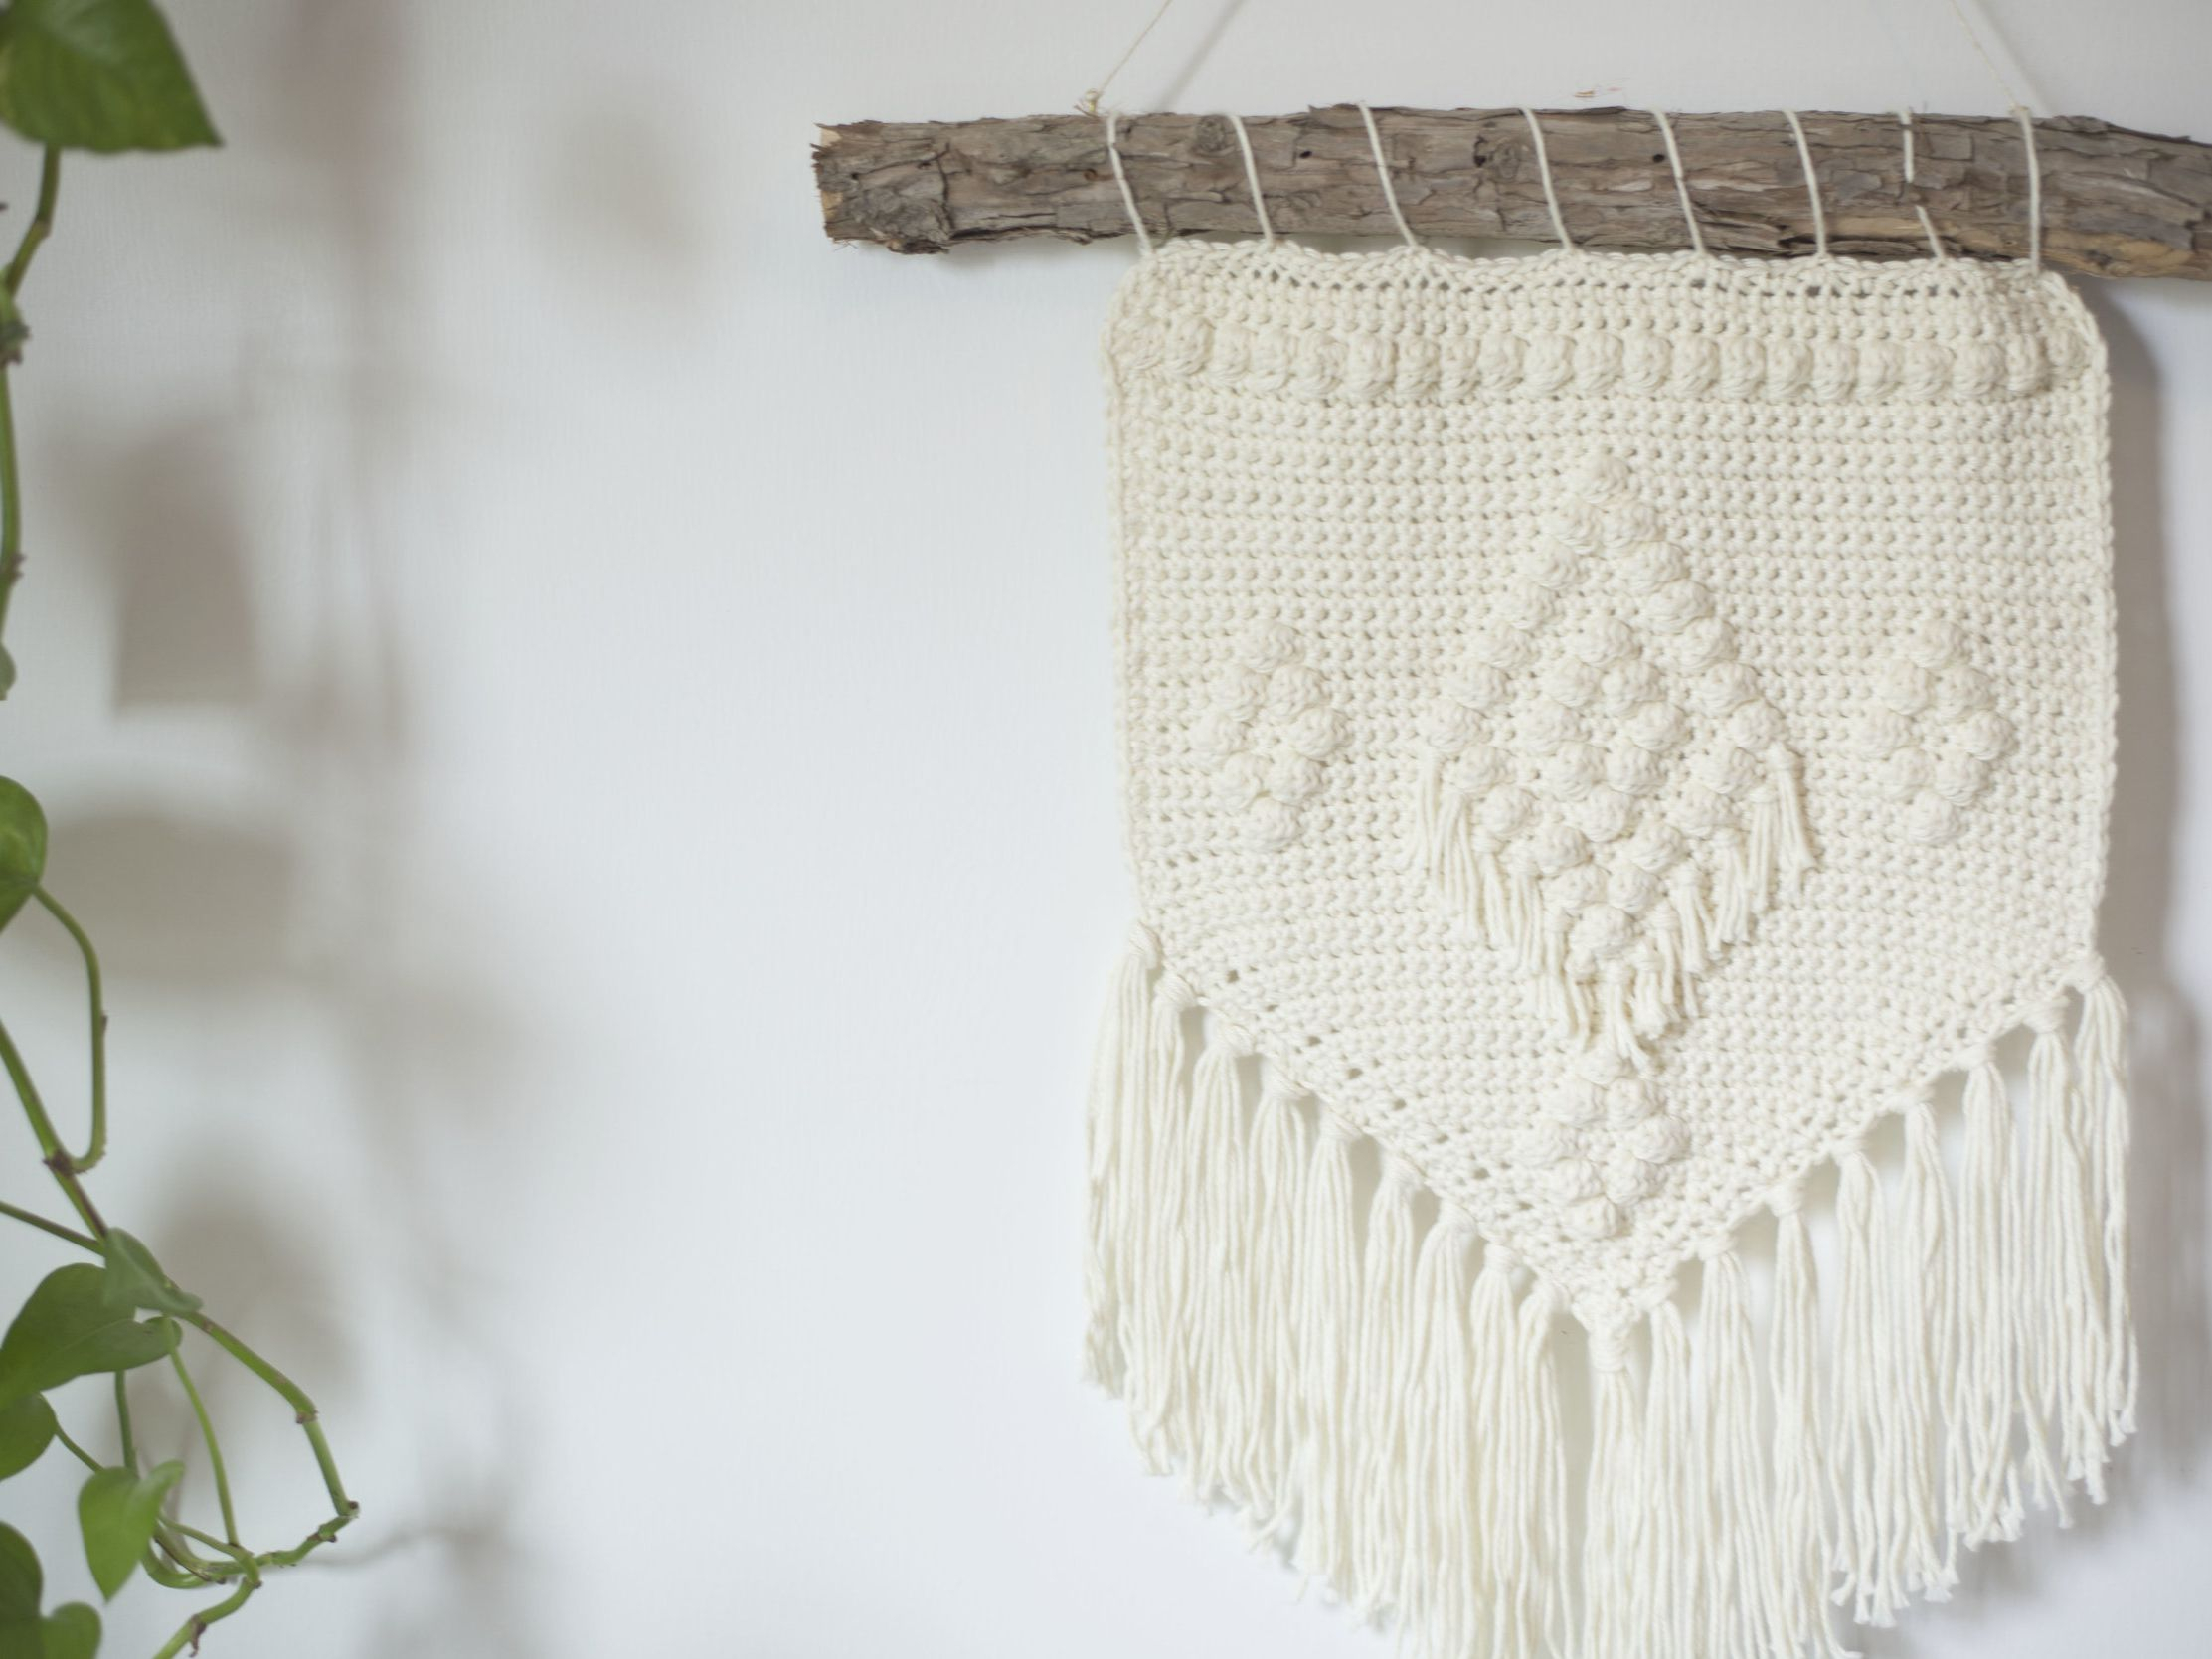 Crochet Wall Hanging Patterns To Try Today Throughout Recent Blended Fabric Wall Hangings With Rod Included (View 18 of 20)